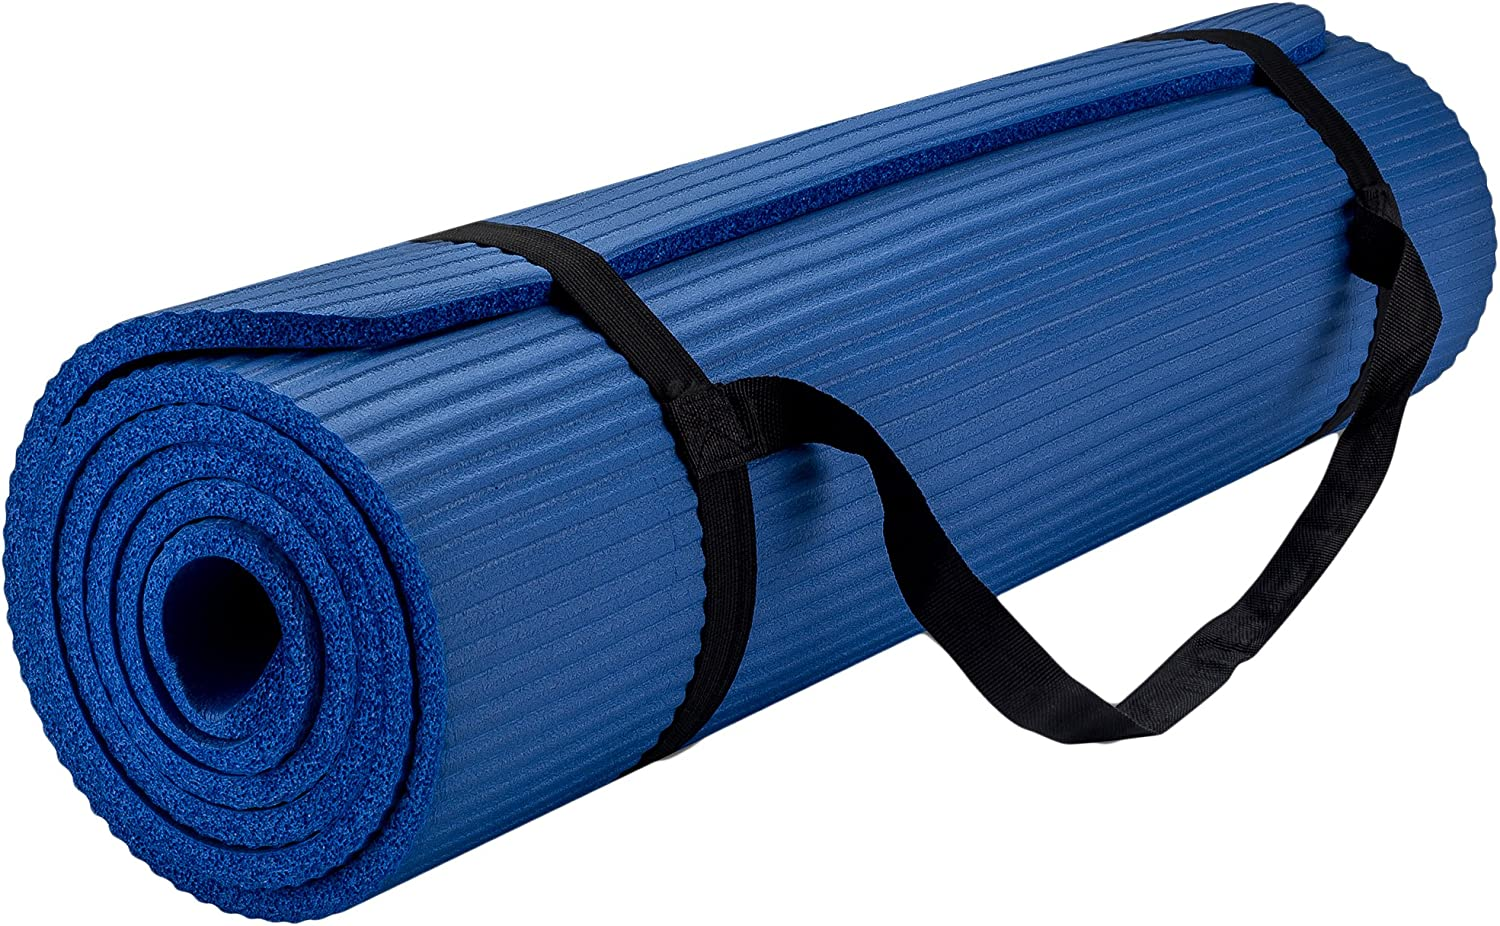 New Life E0-YO4O-VHAS Yoga Mat with Carrying Travel Bag and Strap Thickness Thick Nbr Multiple Use Exercise, Blue